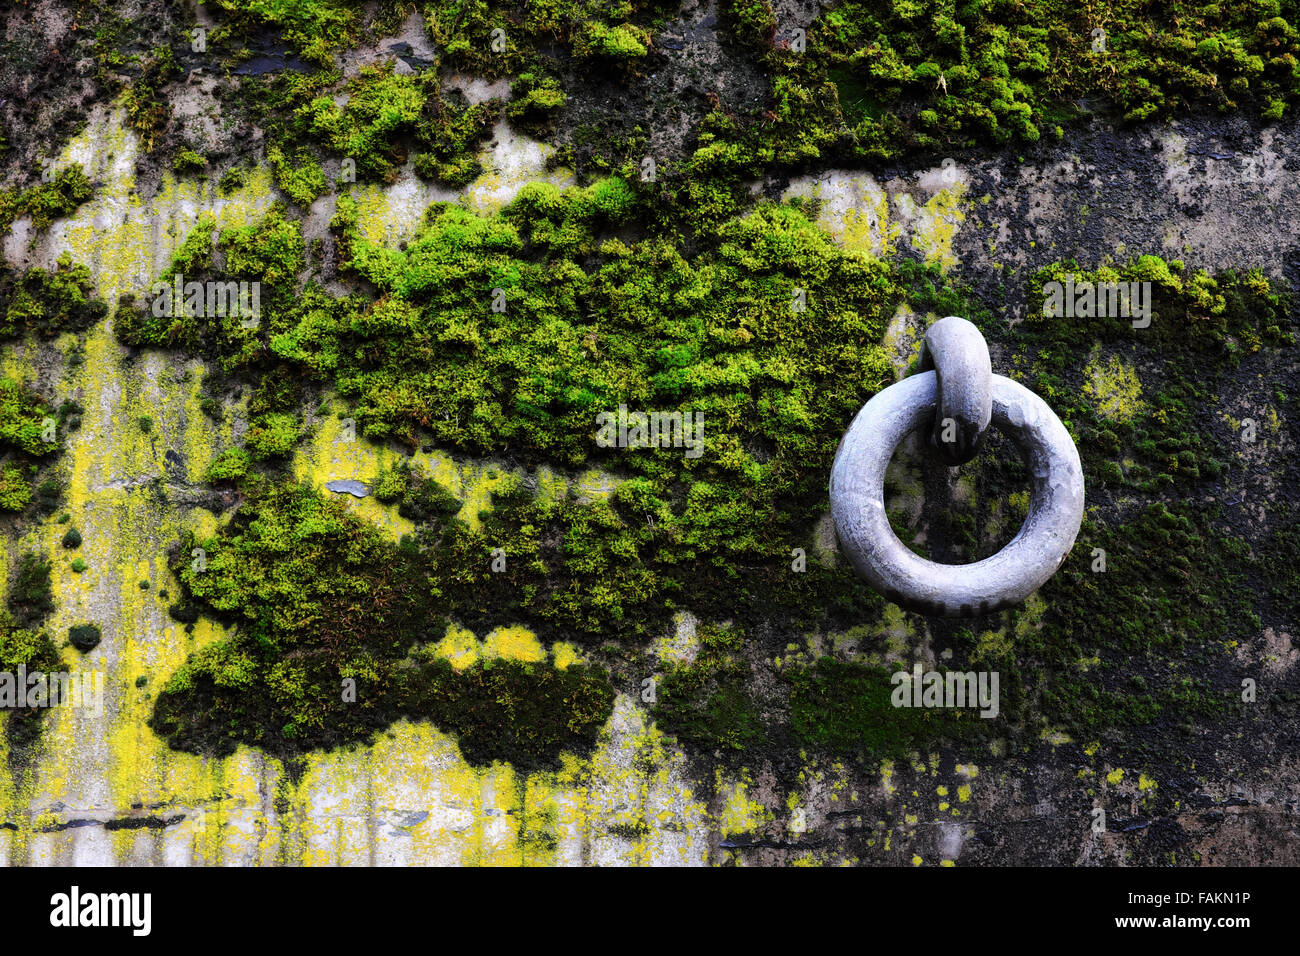 Steel anchor ring on moss and algae covered concrete bunker wall, Artillery Hill, Fort Worden State Park, Port Townsend - Stock Image